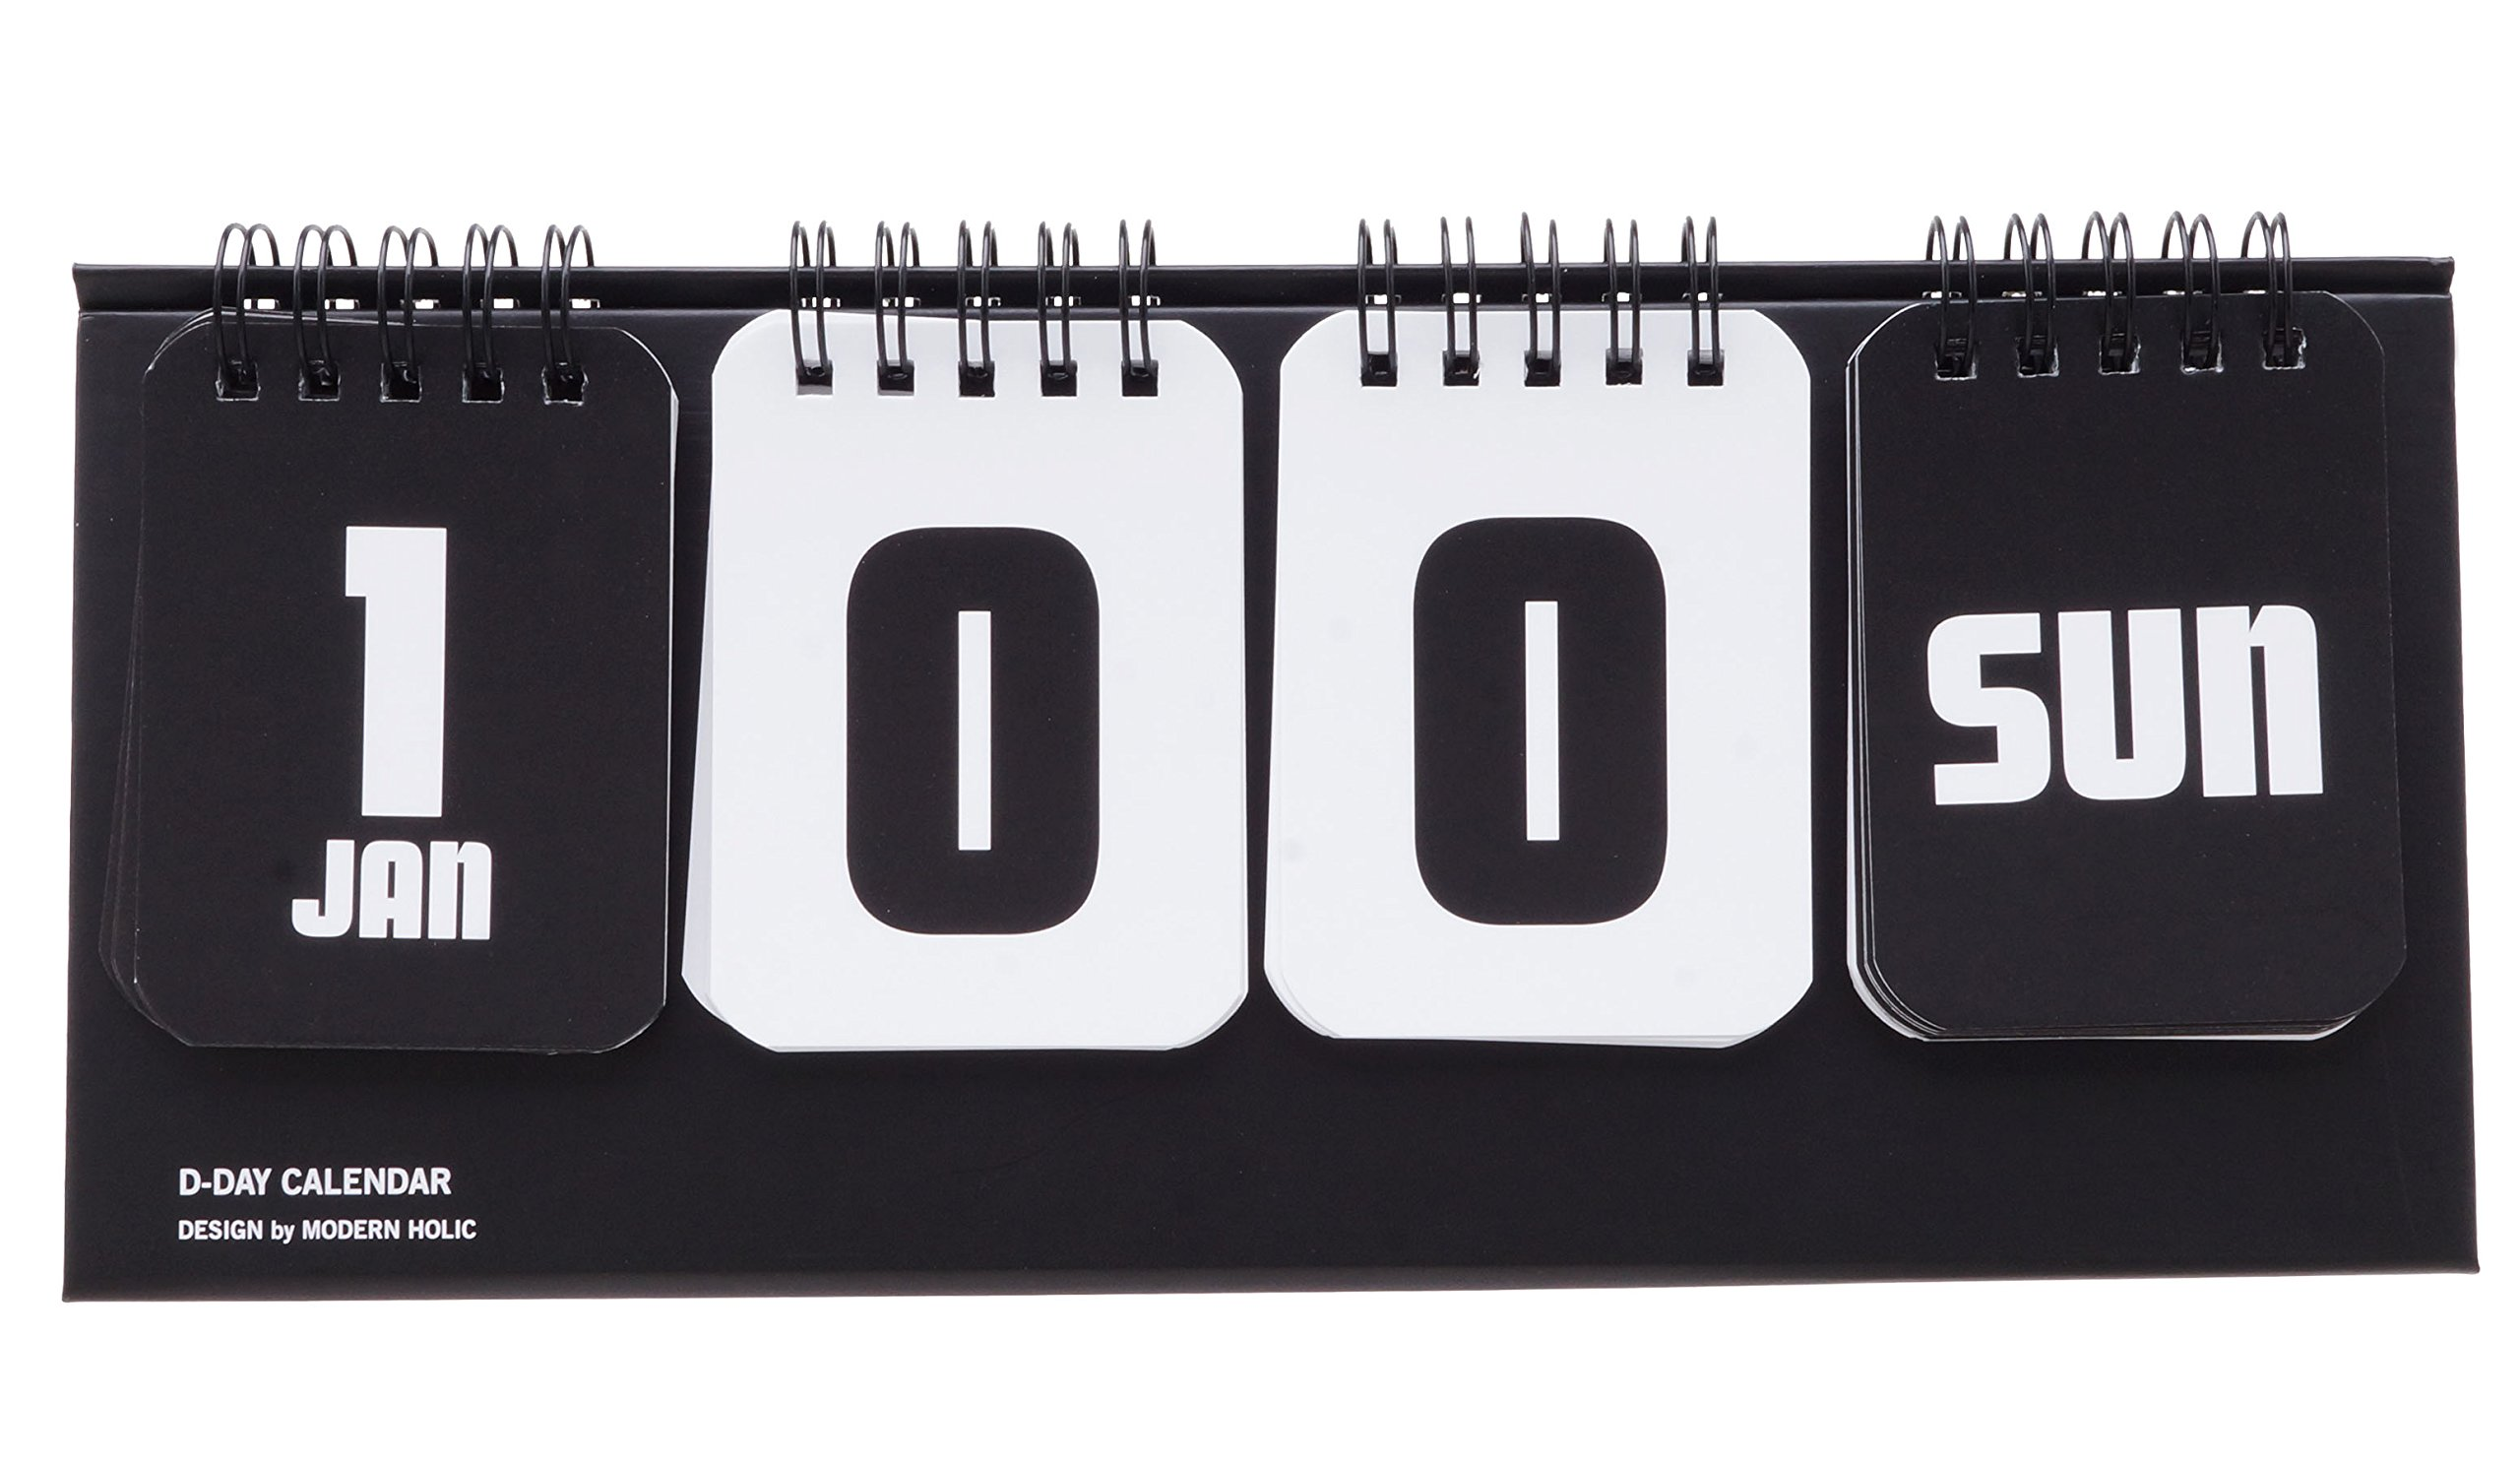 D-Day Calendar, Perpetual Calendar, Table Standing, Cute Illustration, Baby Development Stages (Black)